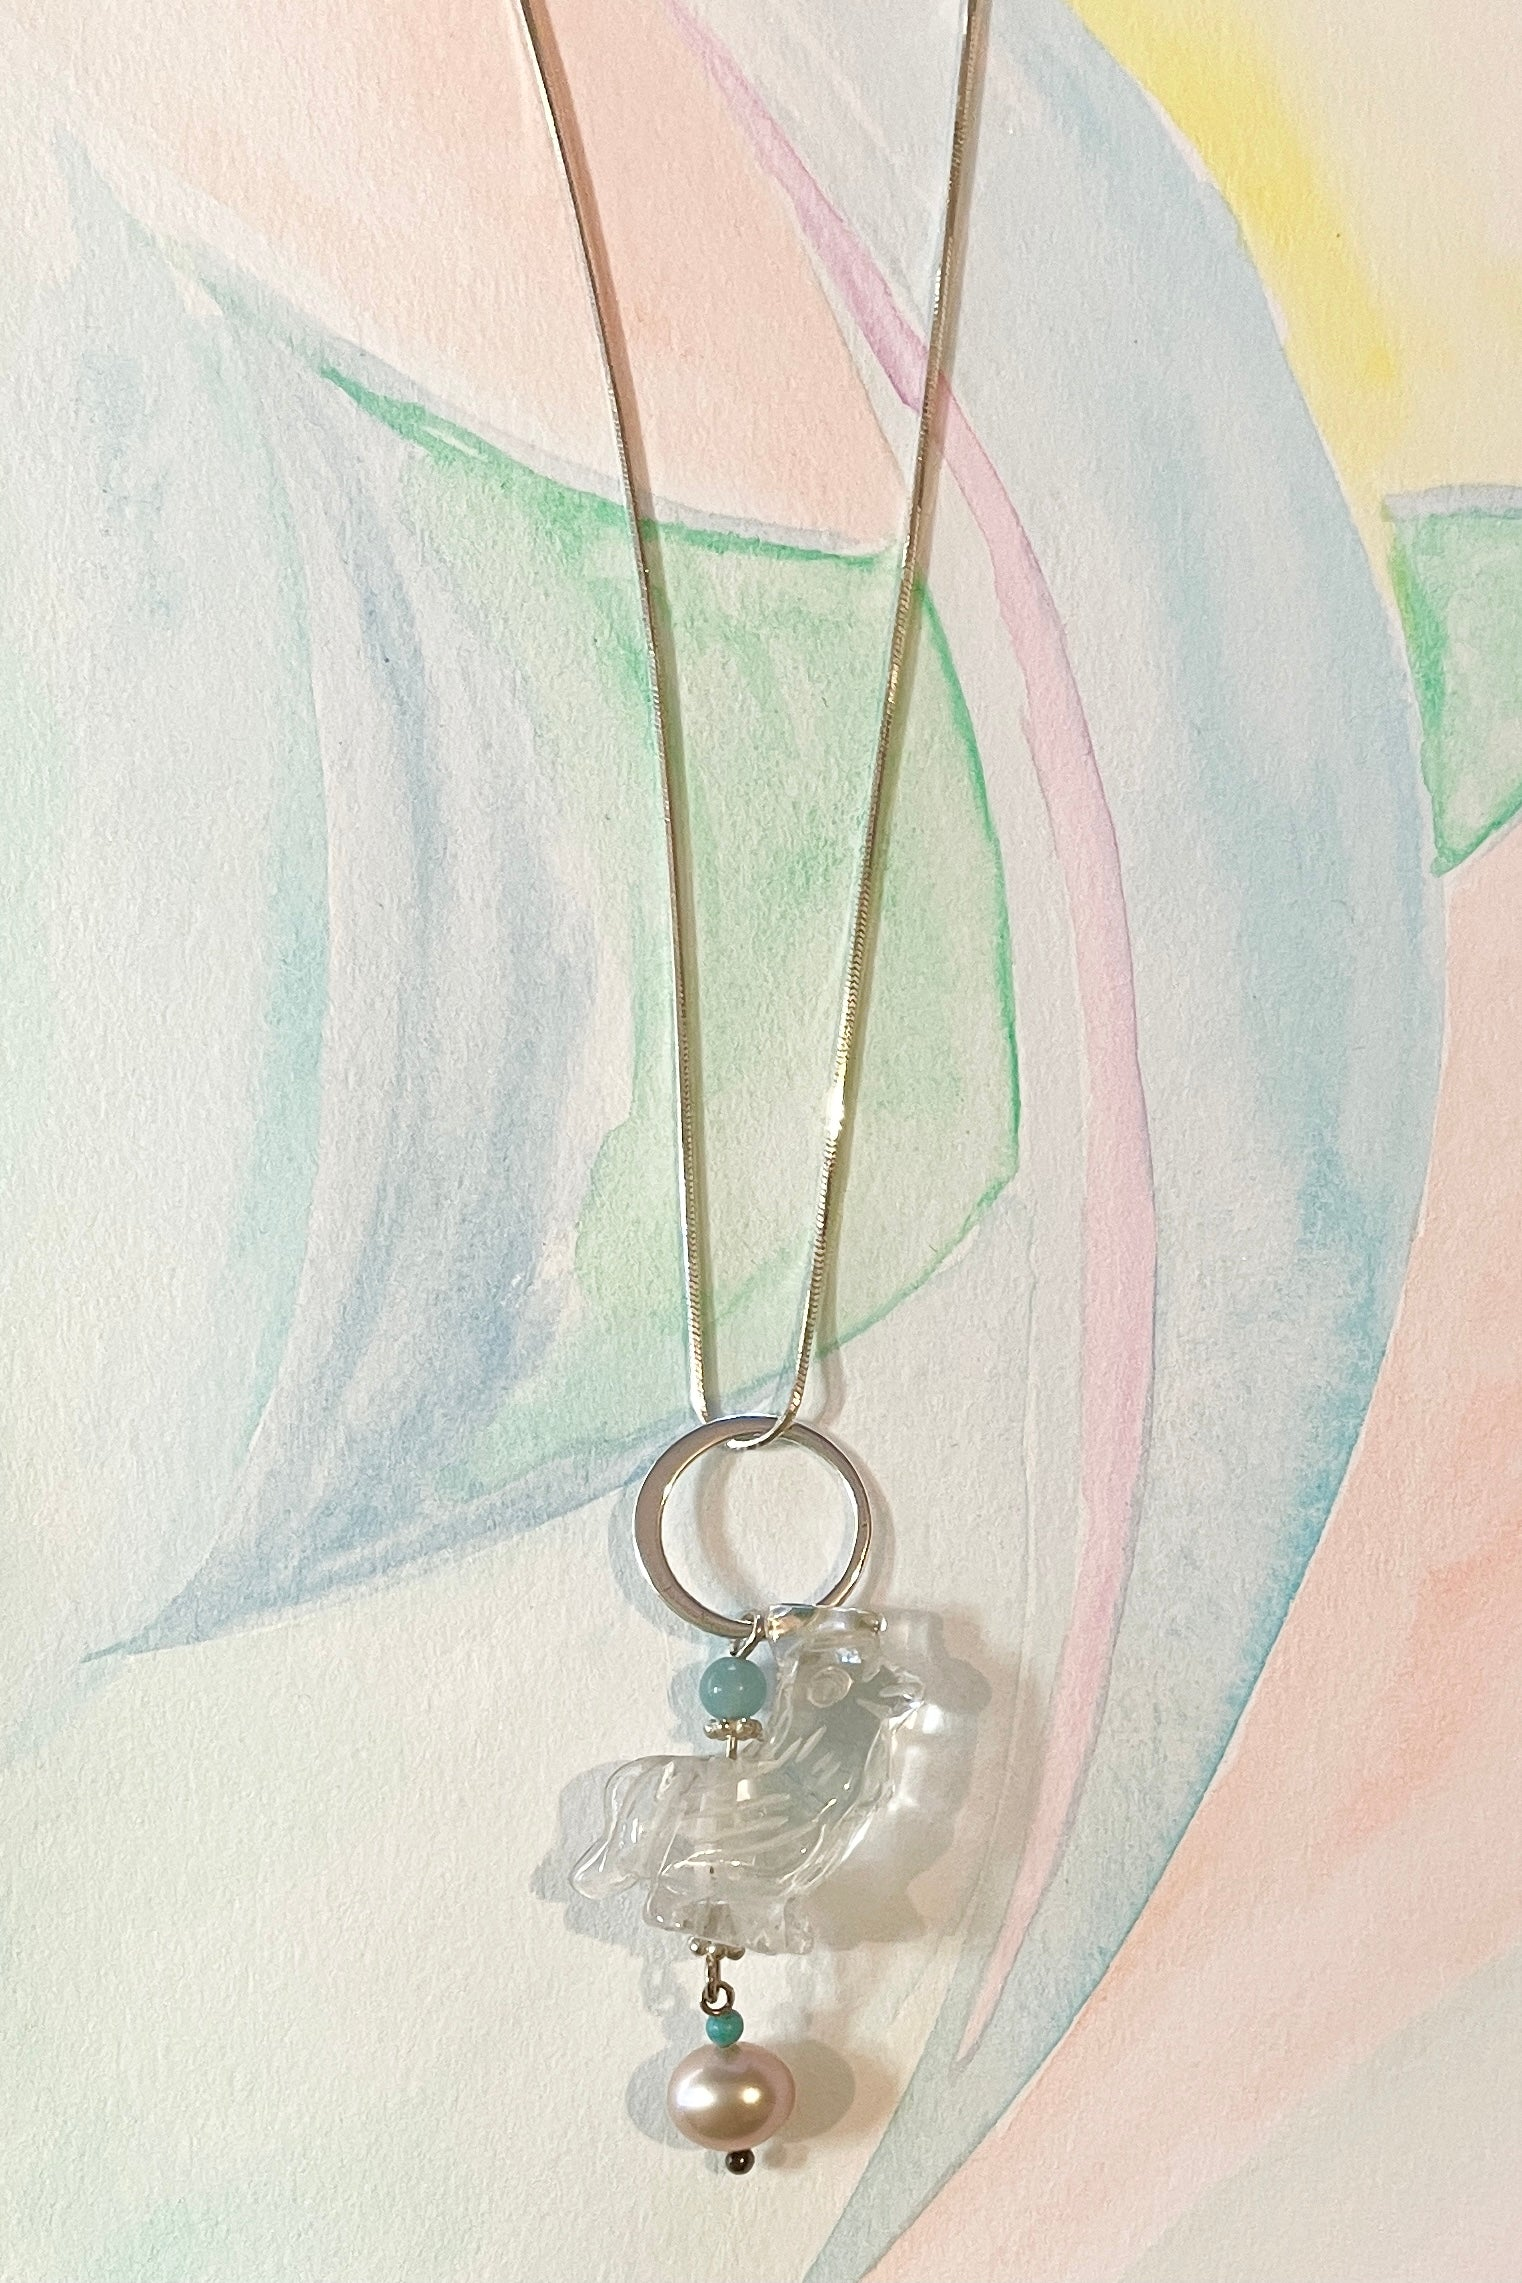 A little hand carved rock crystal rooster on a silver chain. With Amazonite and turquoise beads, a lovely pink pearl hangs at the base, this makes pendant perfection.